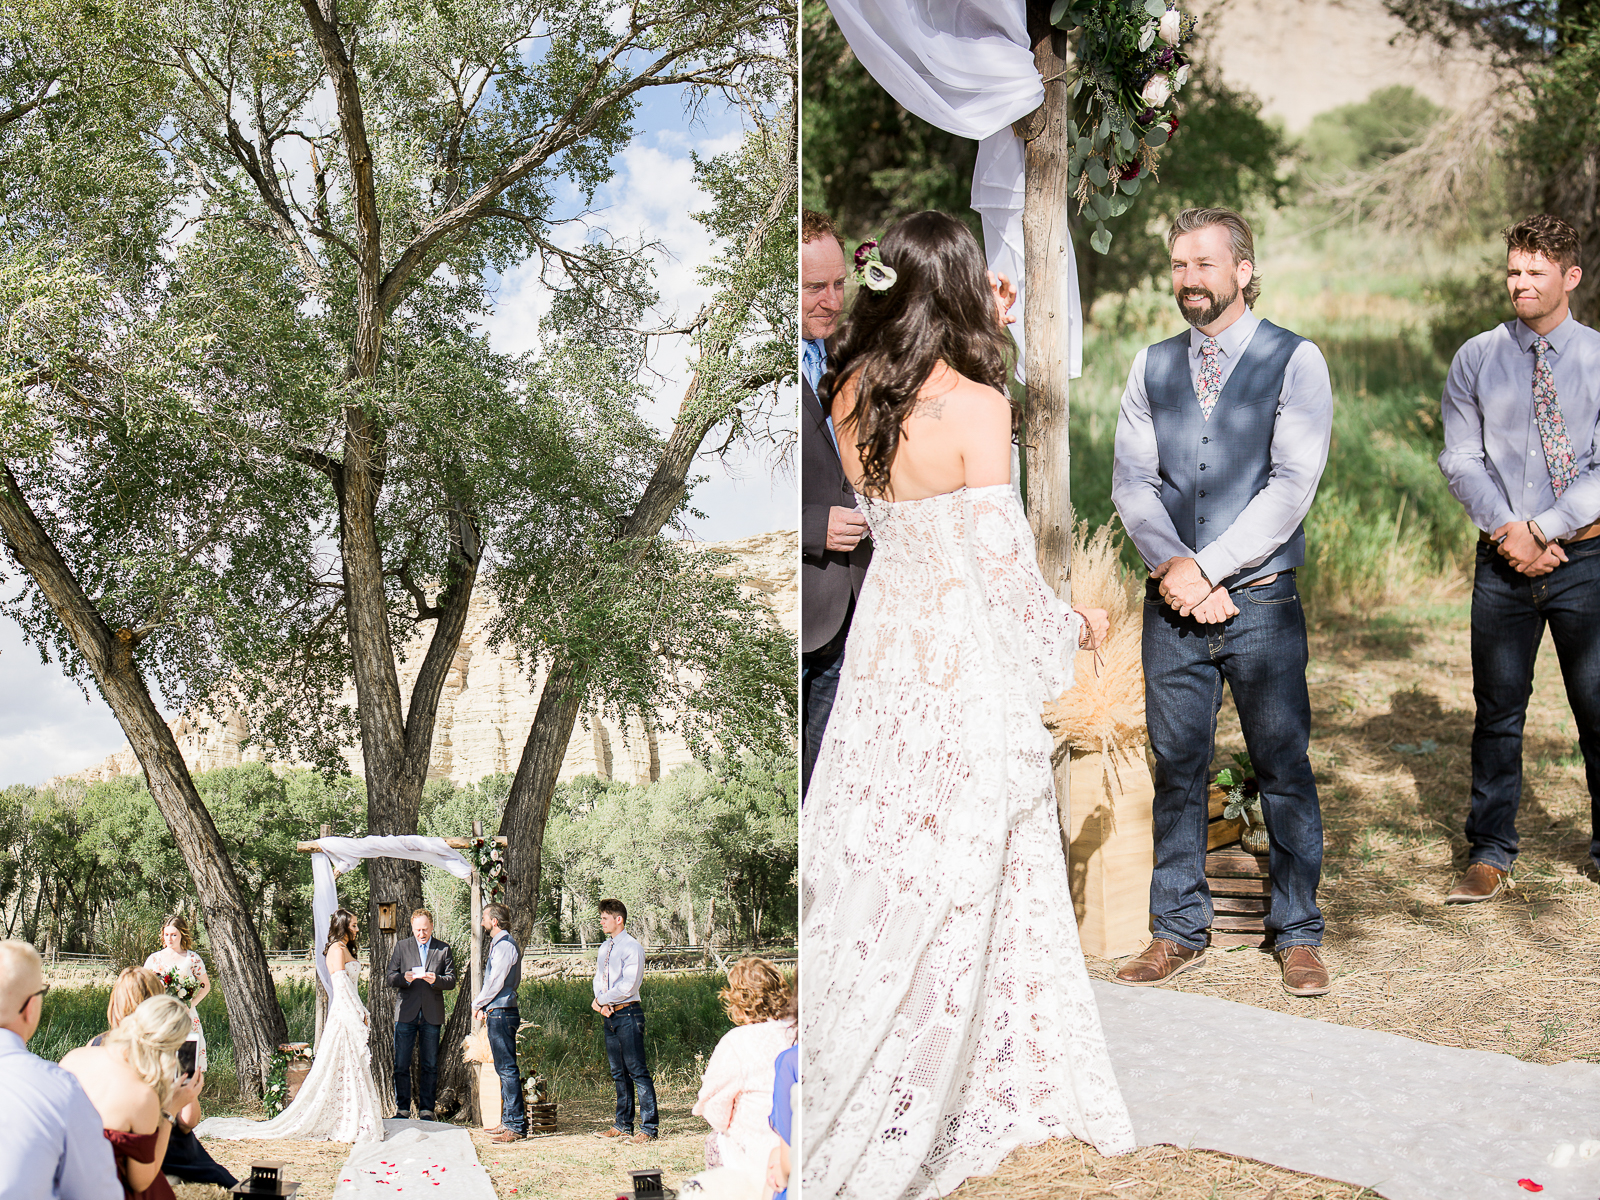 Boho Wedding in Sarataoga, WY by Laramie based photographer, Megan Lee Photography